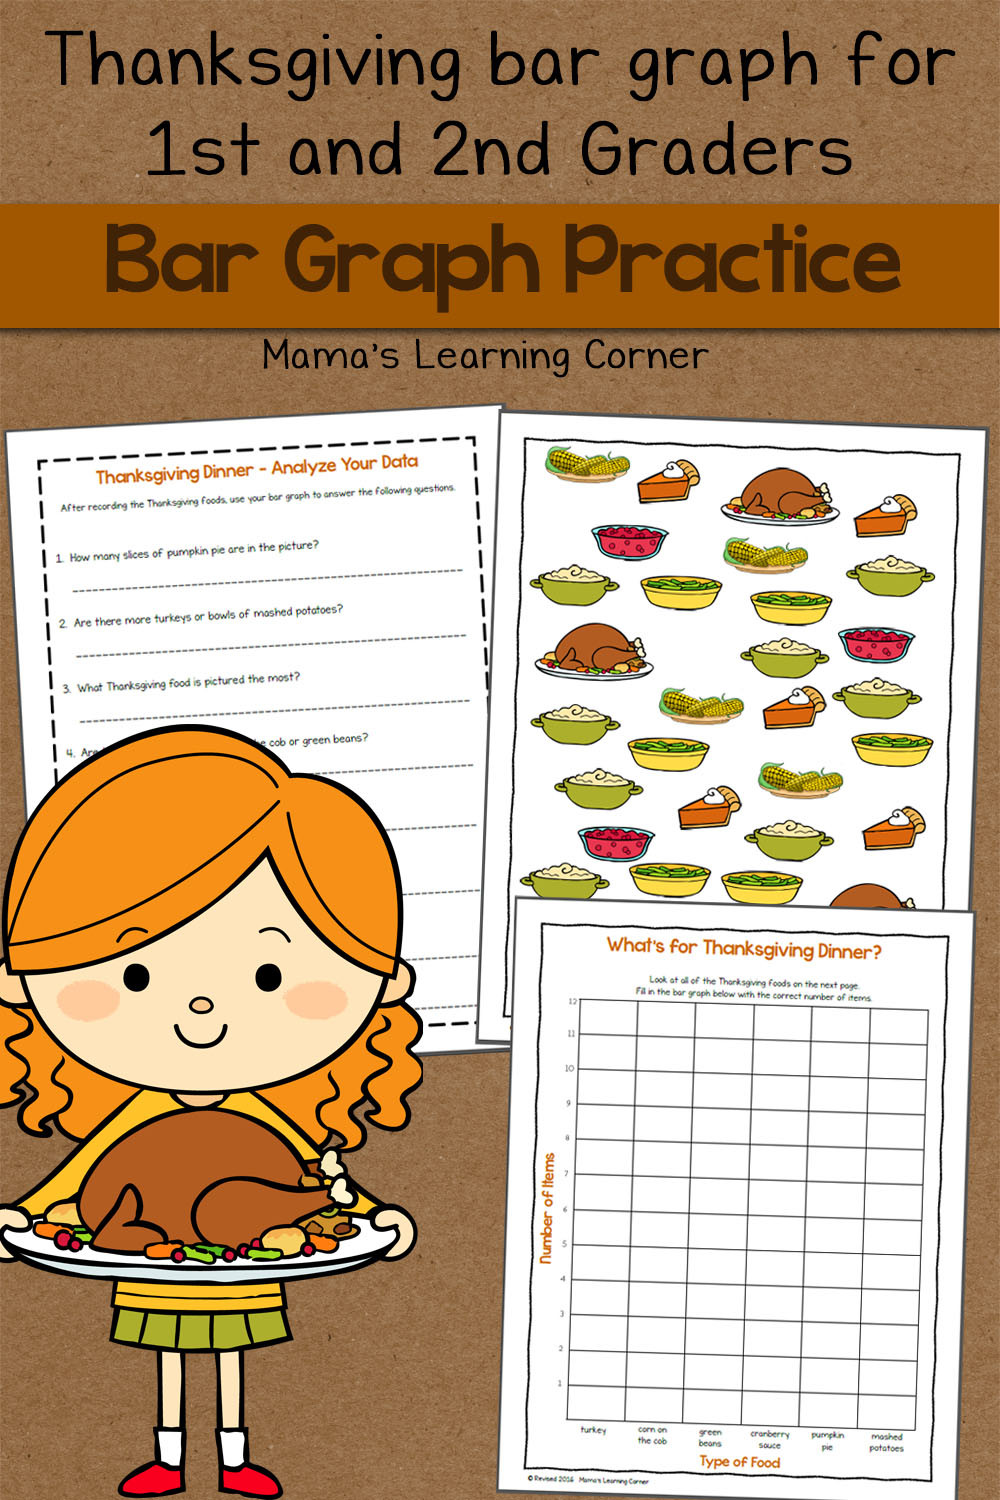 Free Printable Bar Graph Bar Graph Worksheet Thanksgiving Mamas Learning Corner